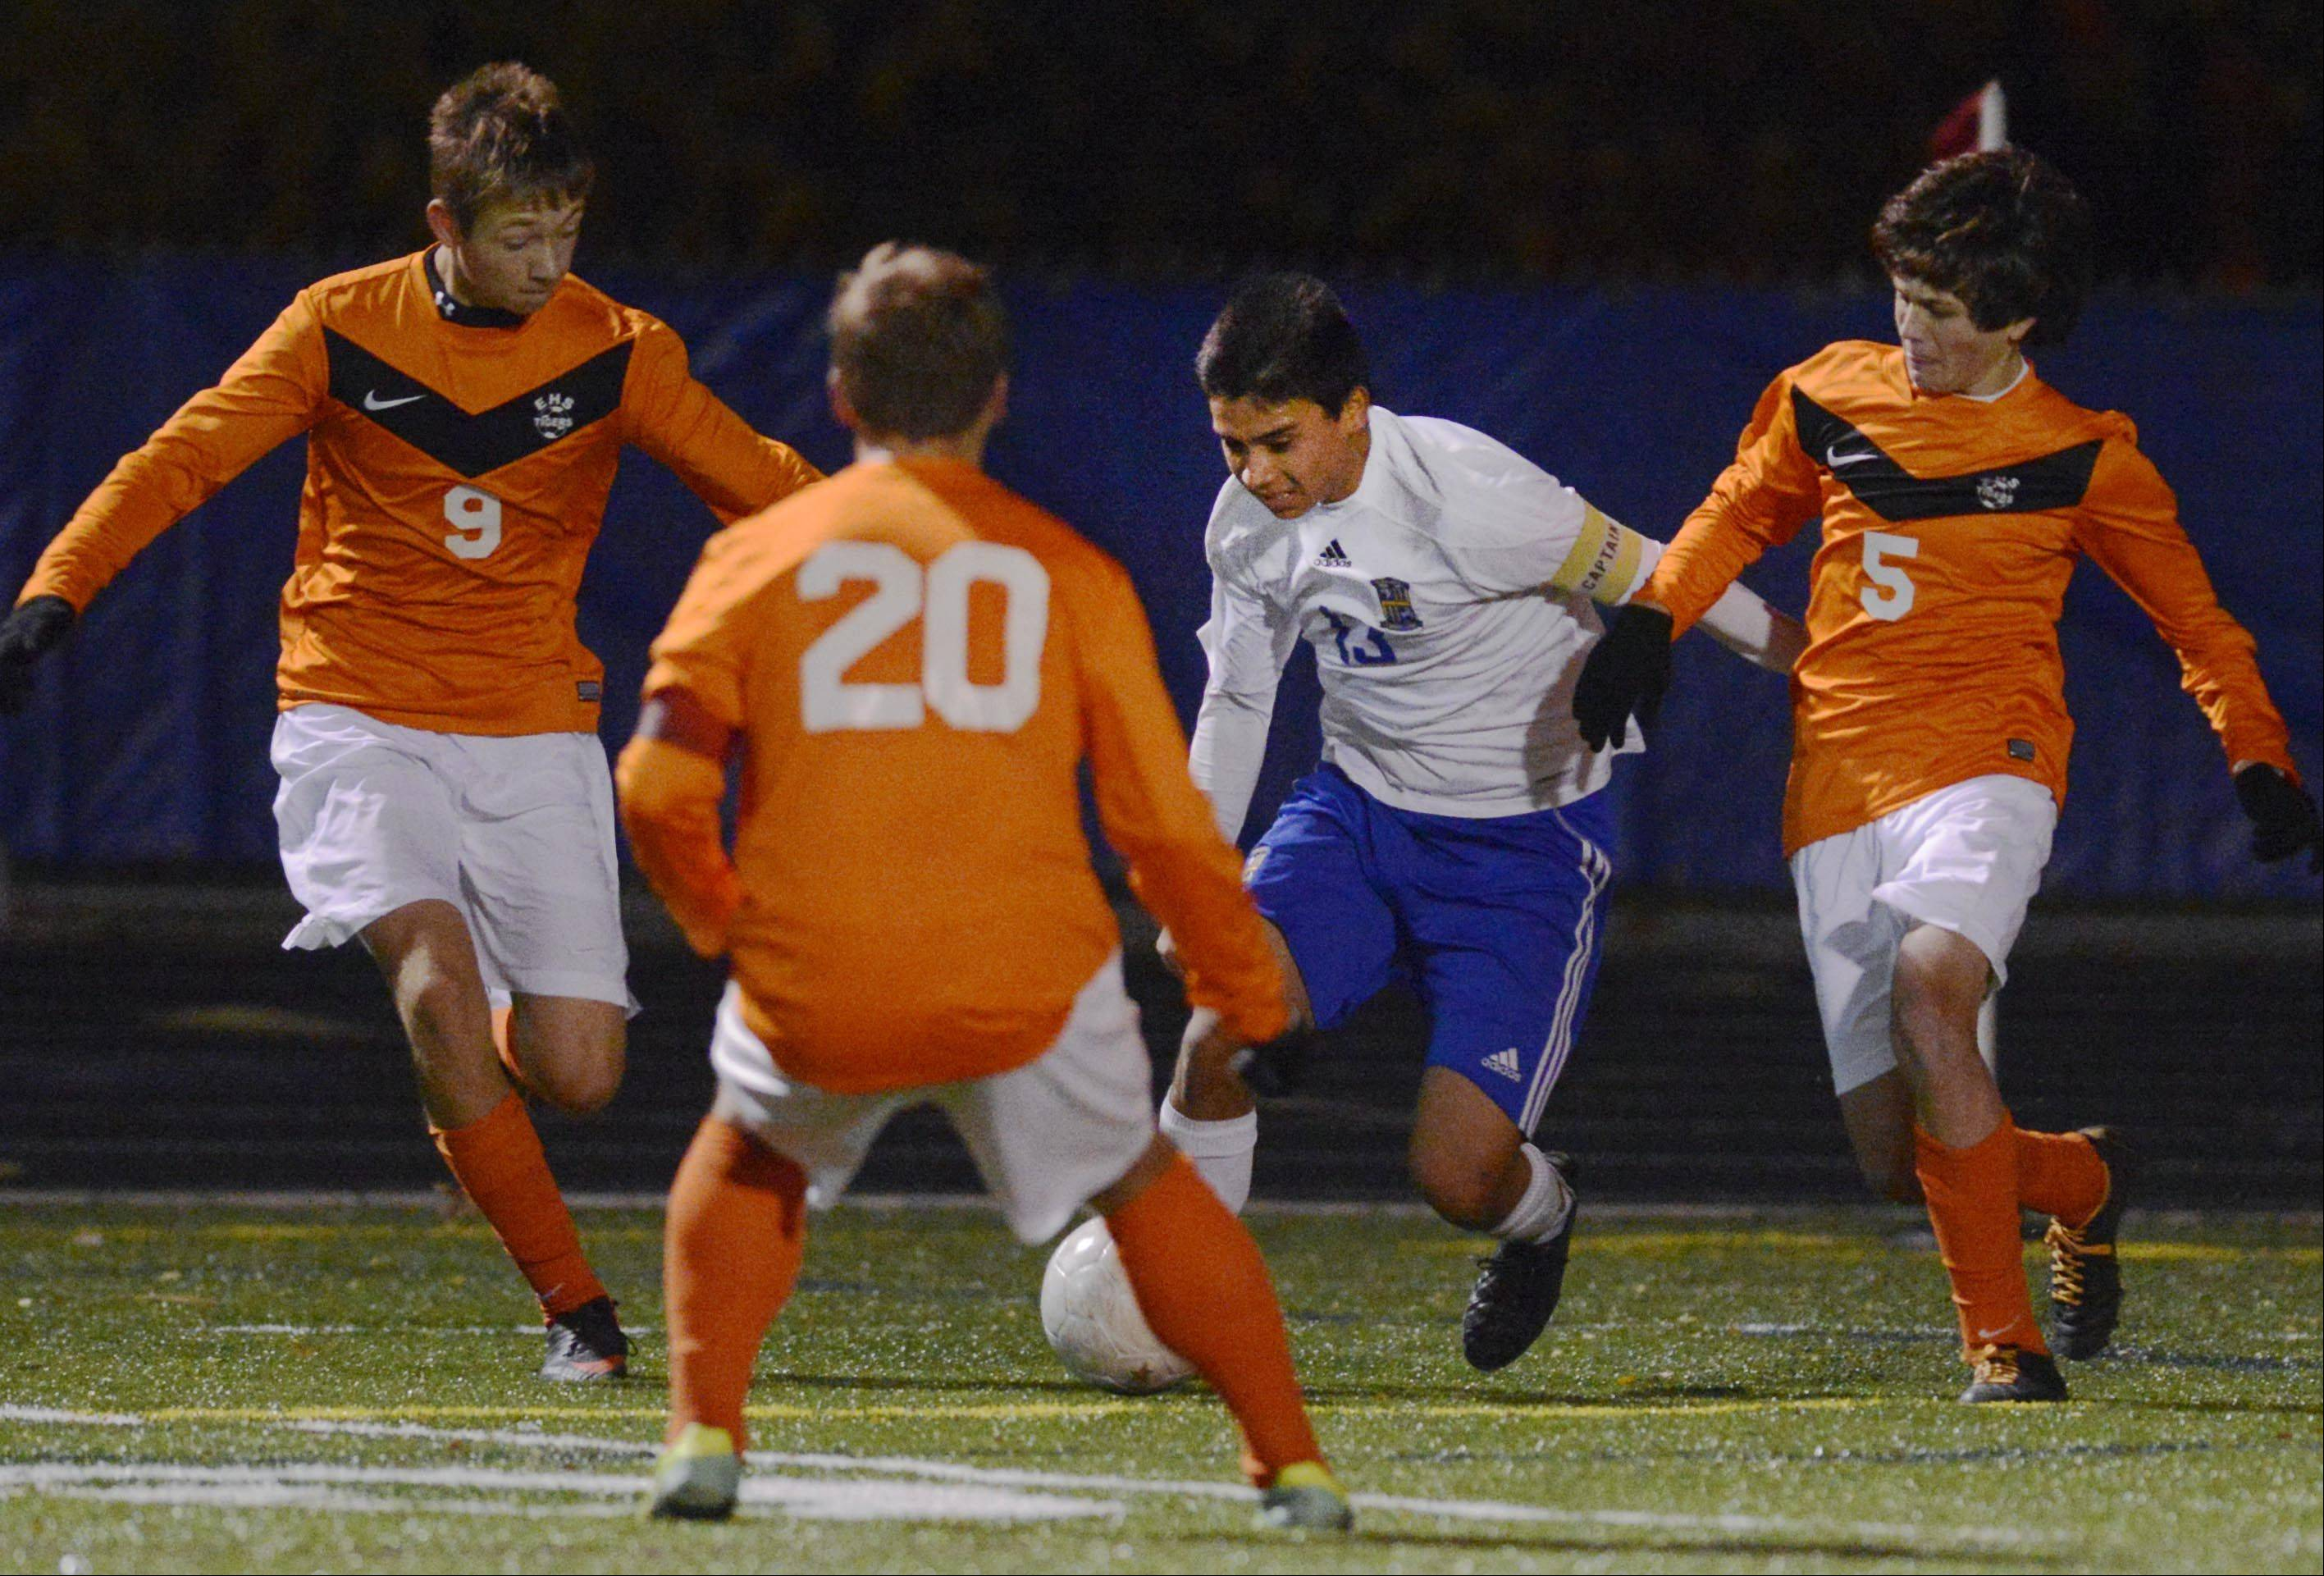 Wheeling's Jose Garcia is surrounded by Edwardsville players as he tries to center the ball in front of the net in the Class 3A soccer state championship game Saturday night in Hoffman Estates.